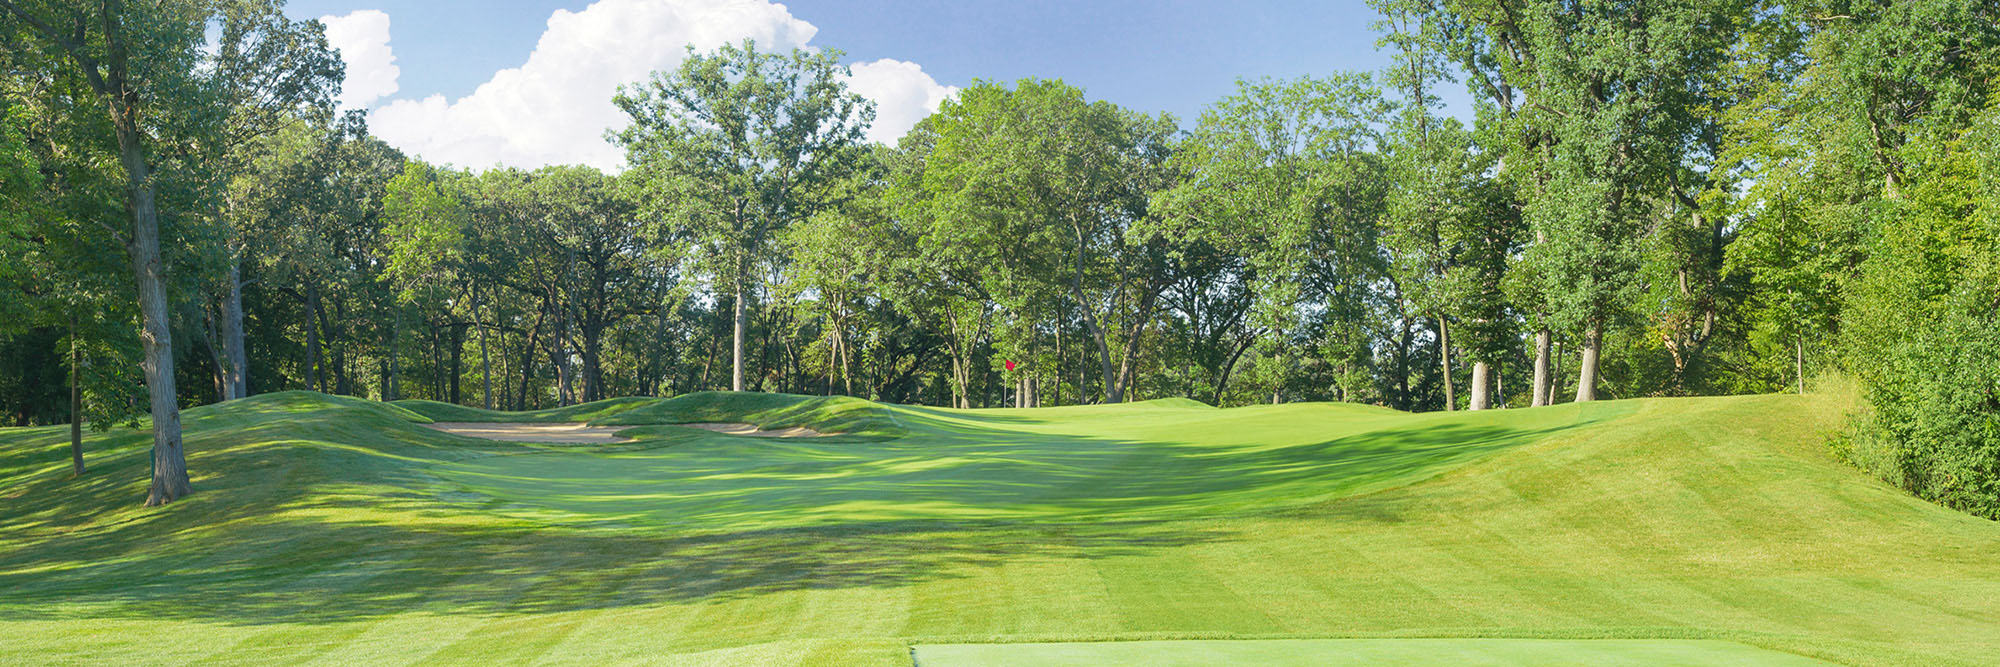 Golf Course Image - Olympia Fields South No. 3